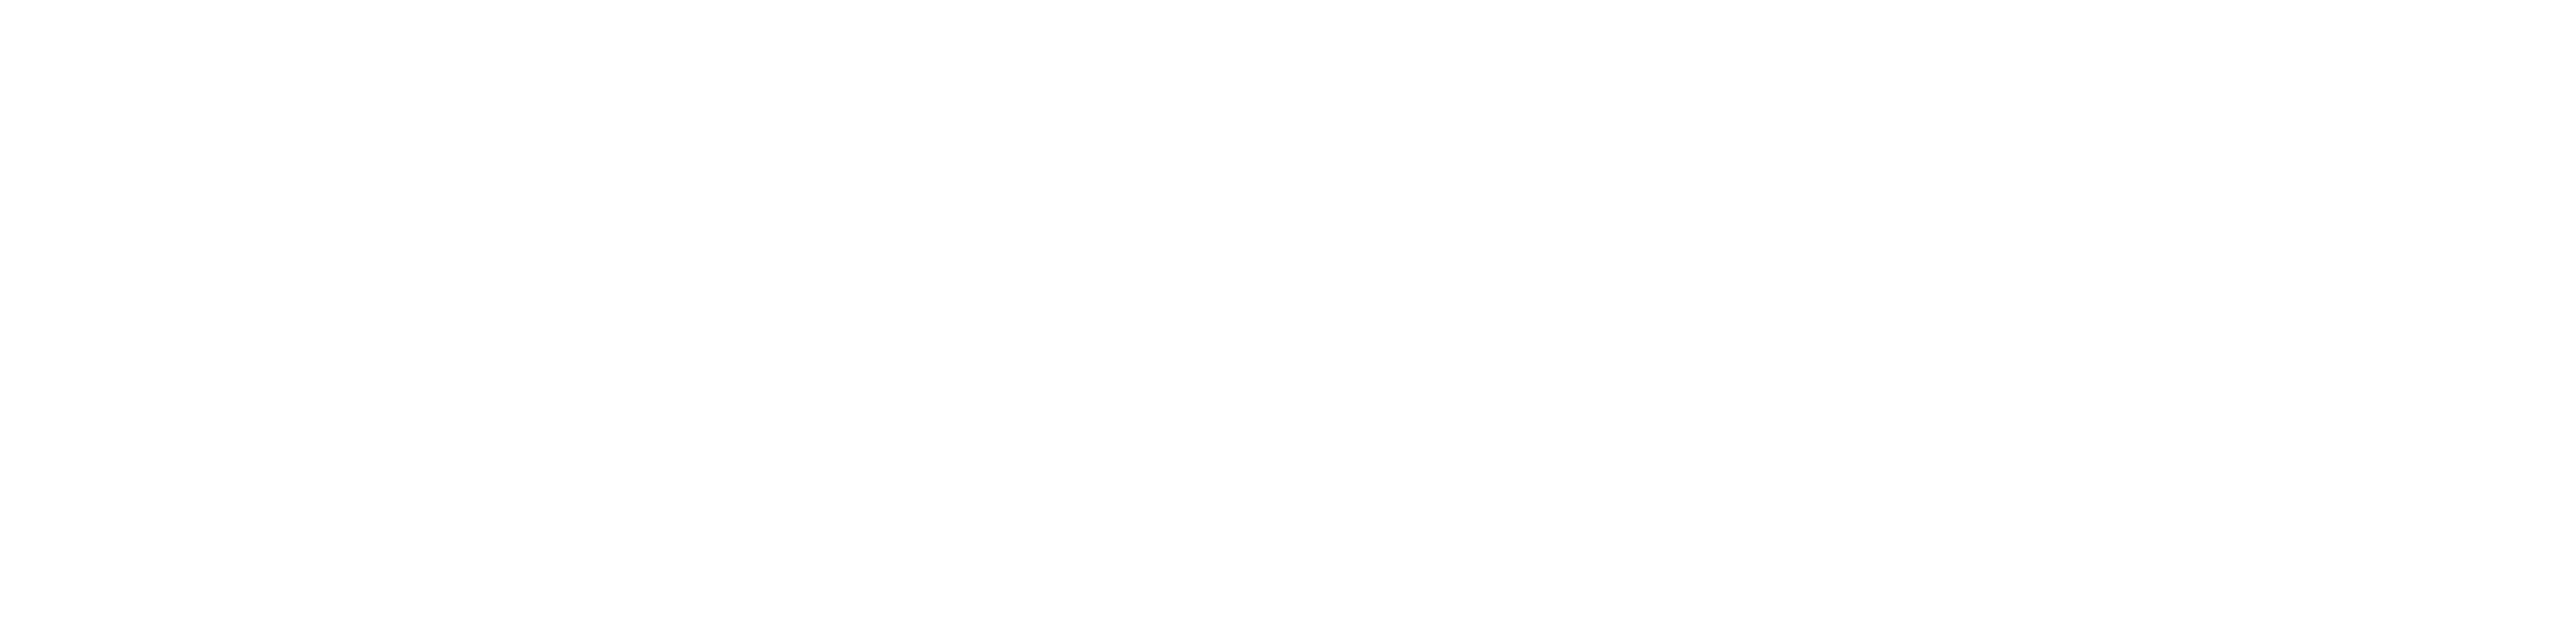 Logo Virutex Ilko blanco